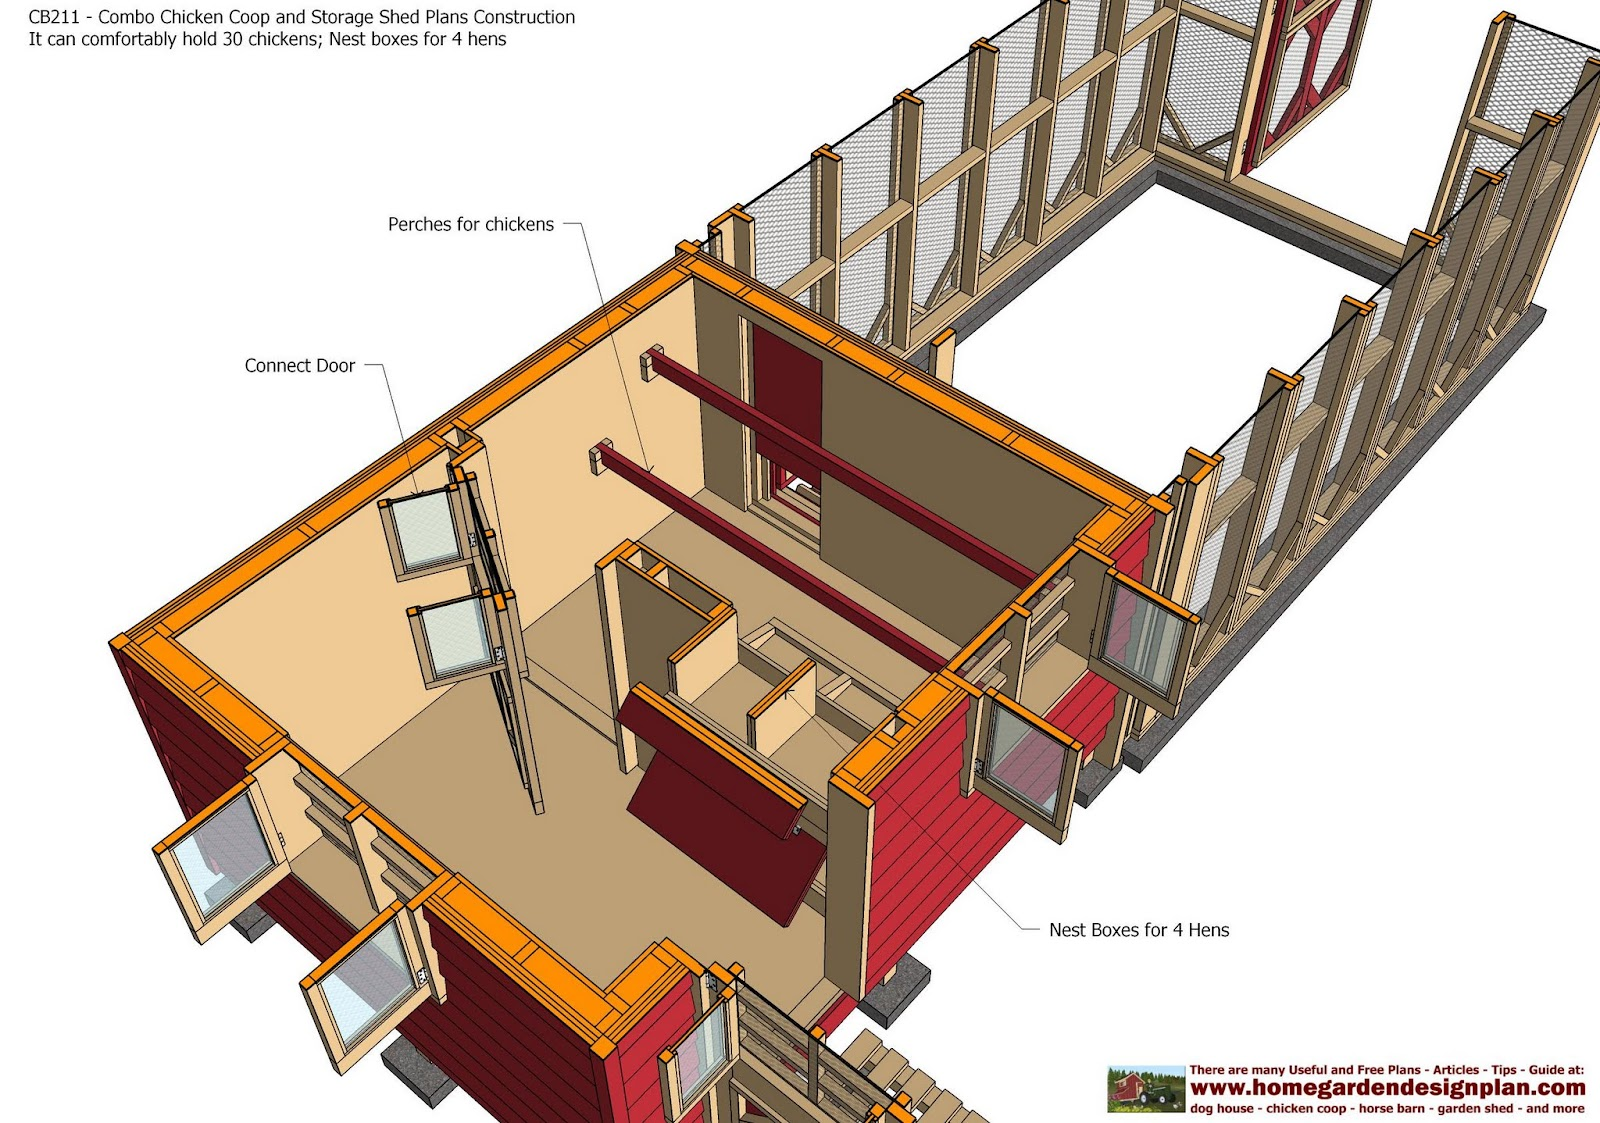 ... Shed Plans - Chicken Coop Plans - Storage Shed Plans Construction